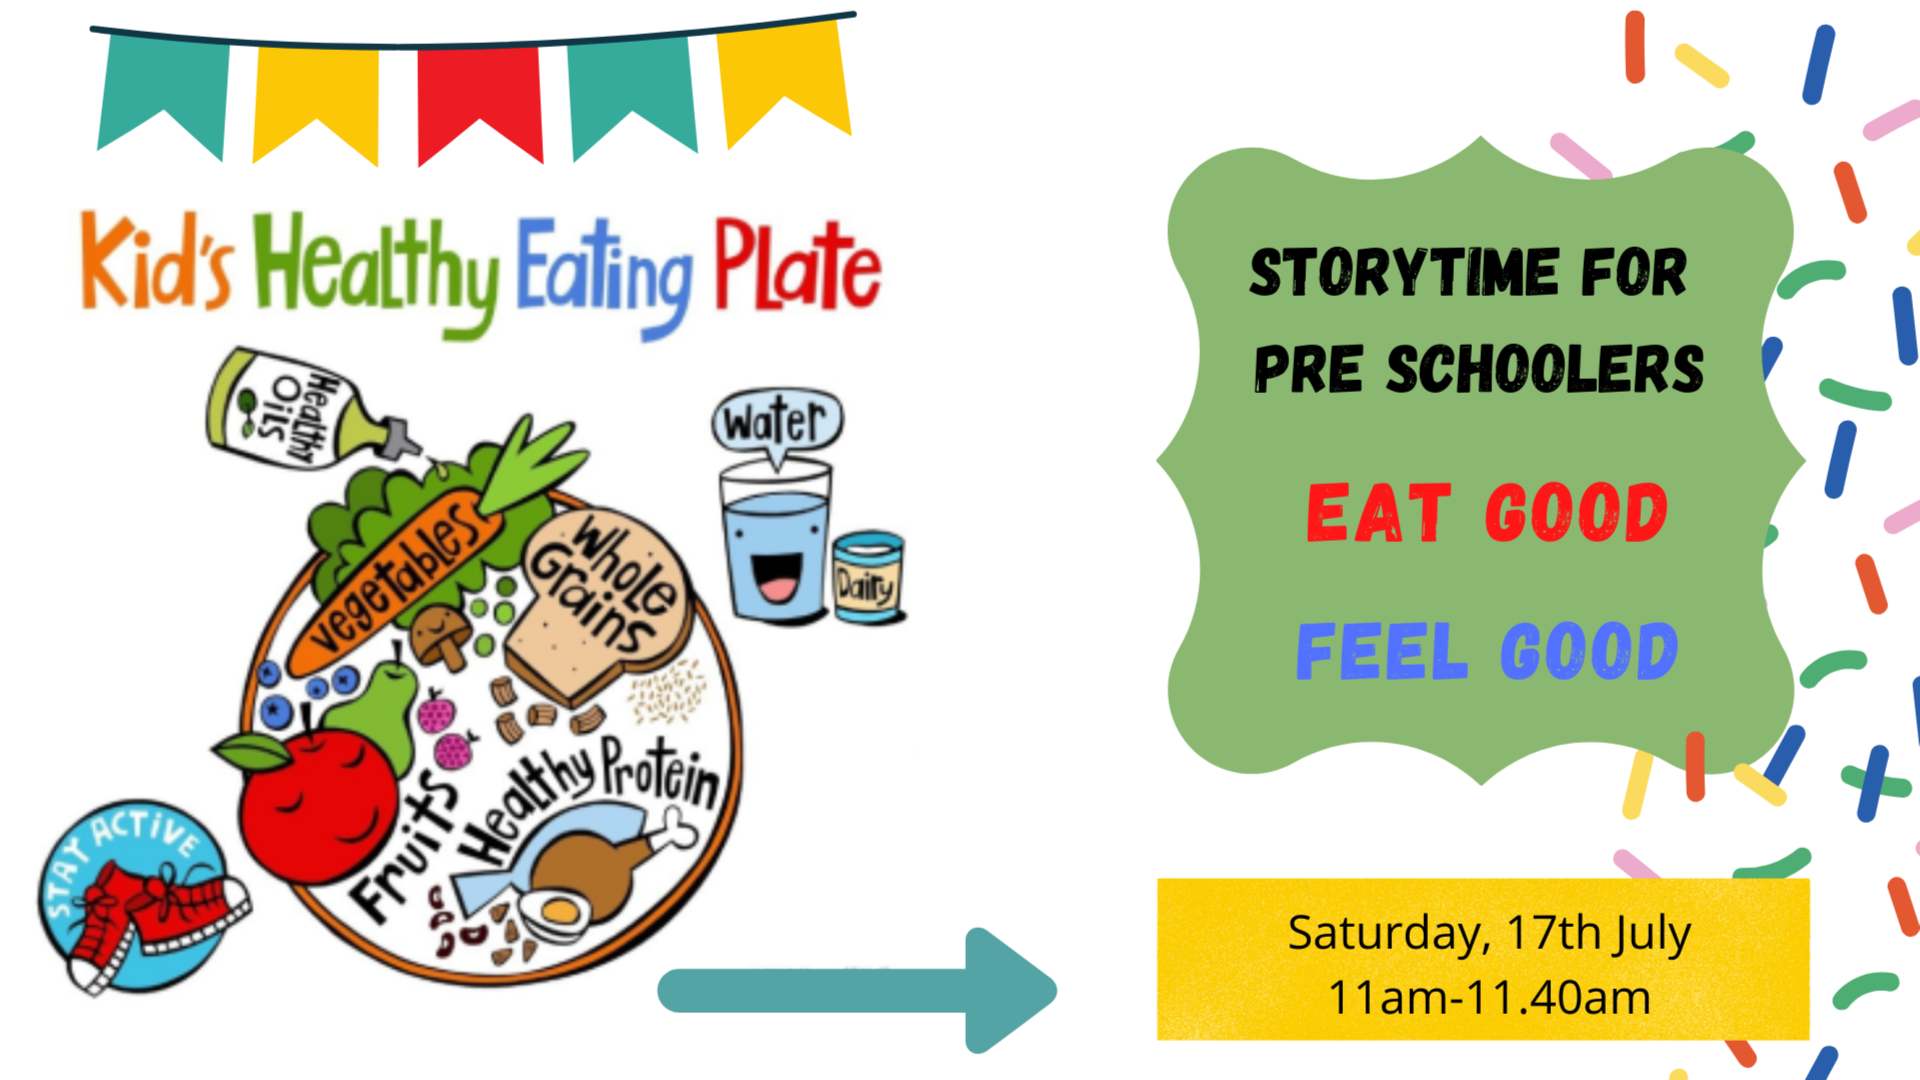 Story time - Let's Eat Healthy